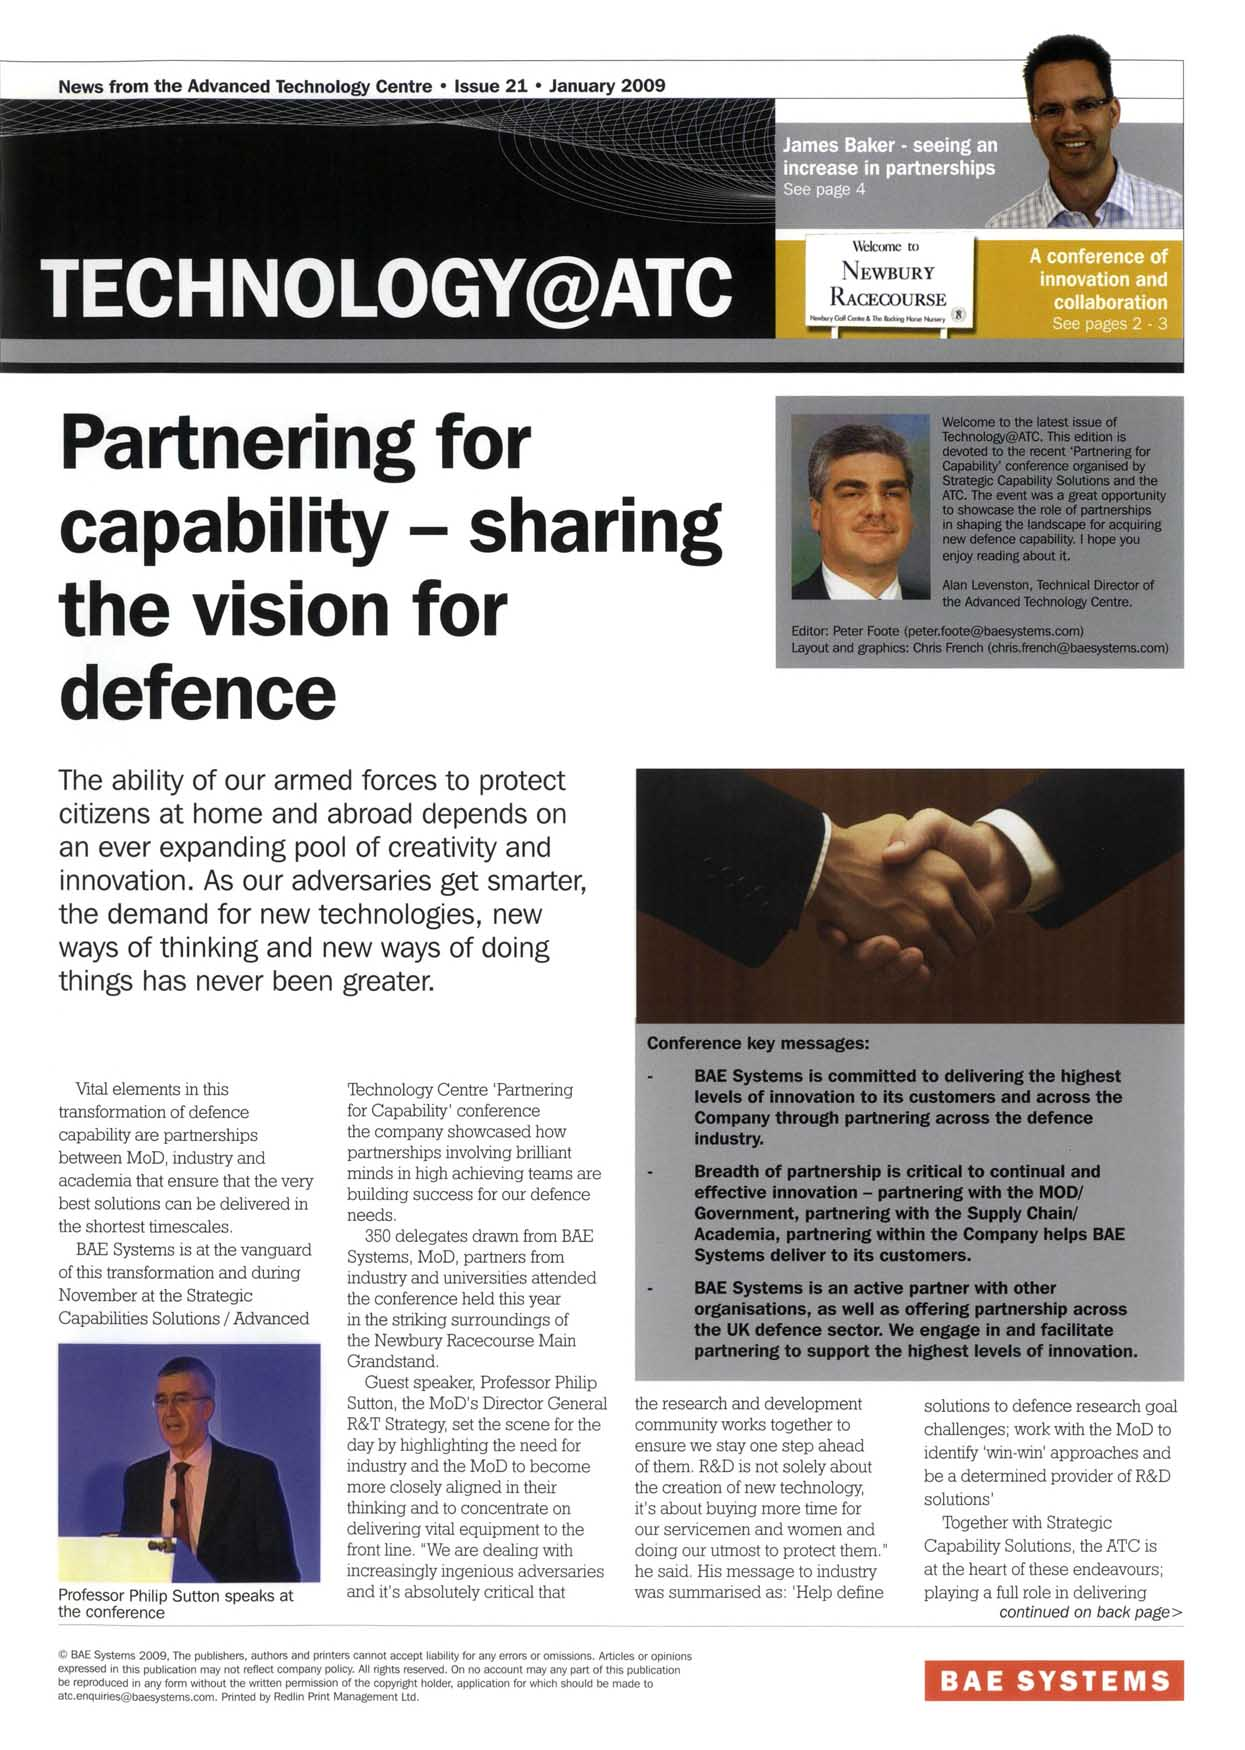 Technology @ ATC, Issue 21